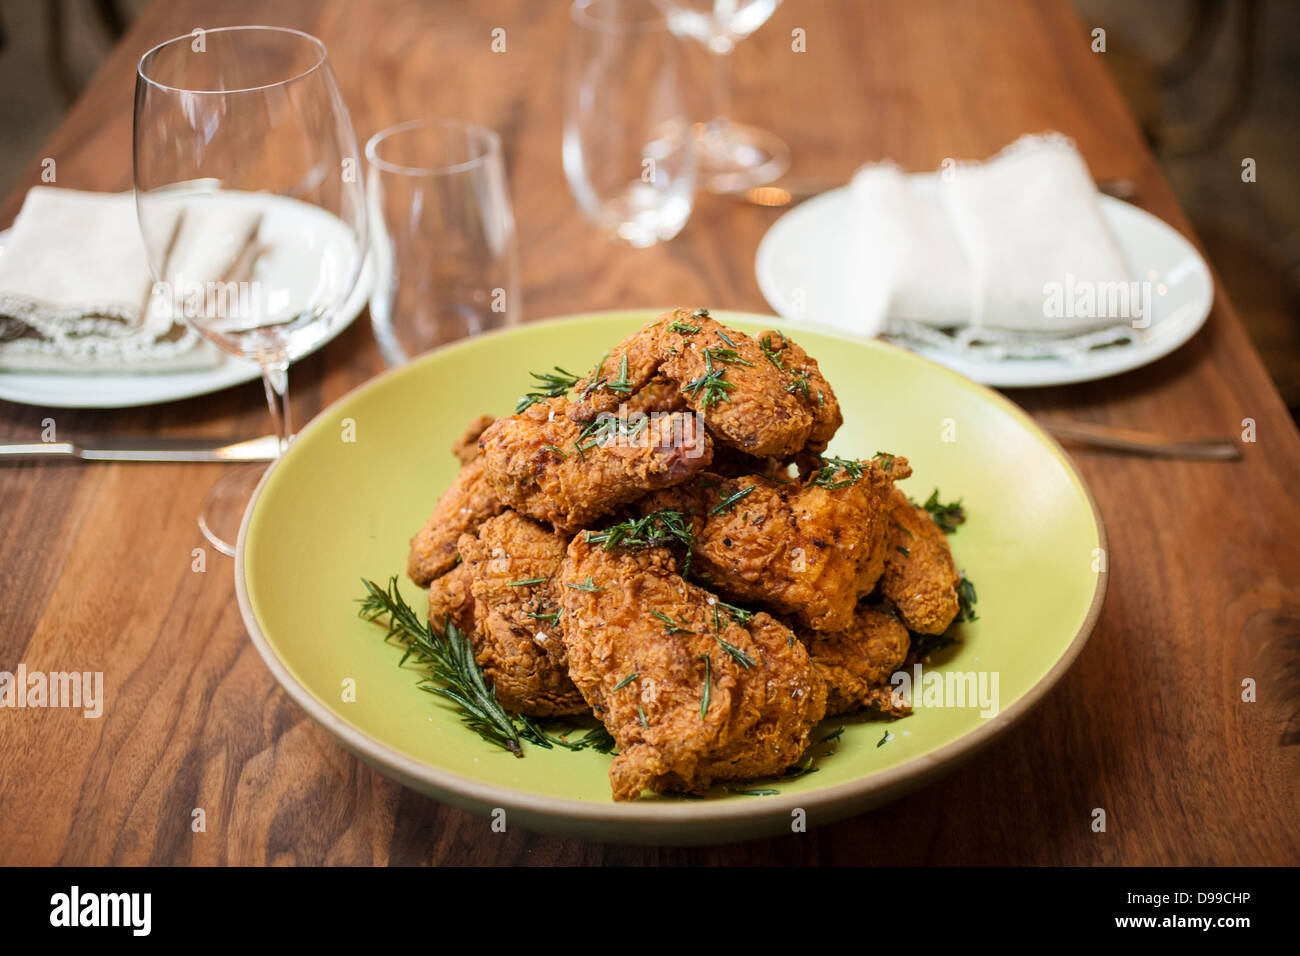 golden fried chicken ready to eat on thetable - Stock Image